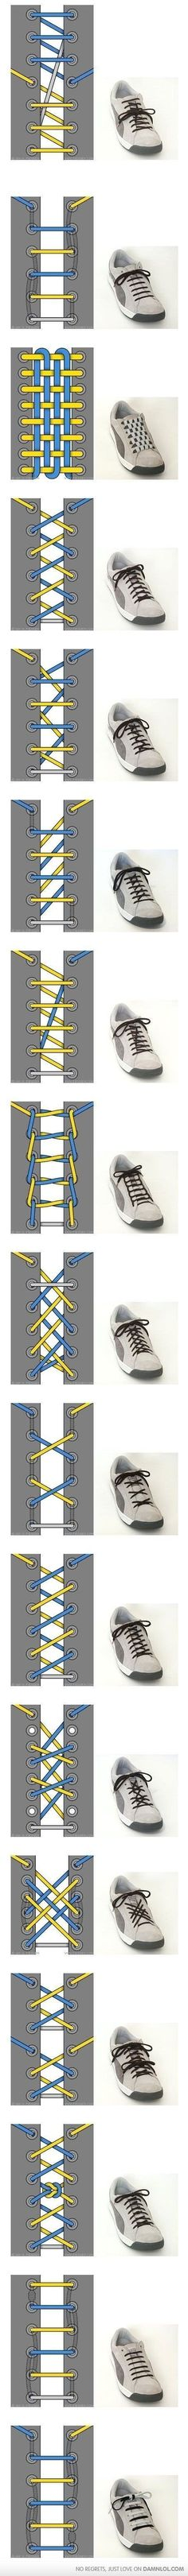 17 ways to lace your sneakers.